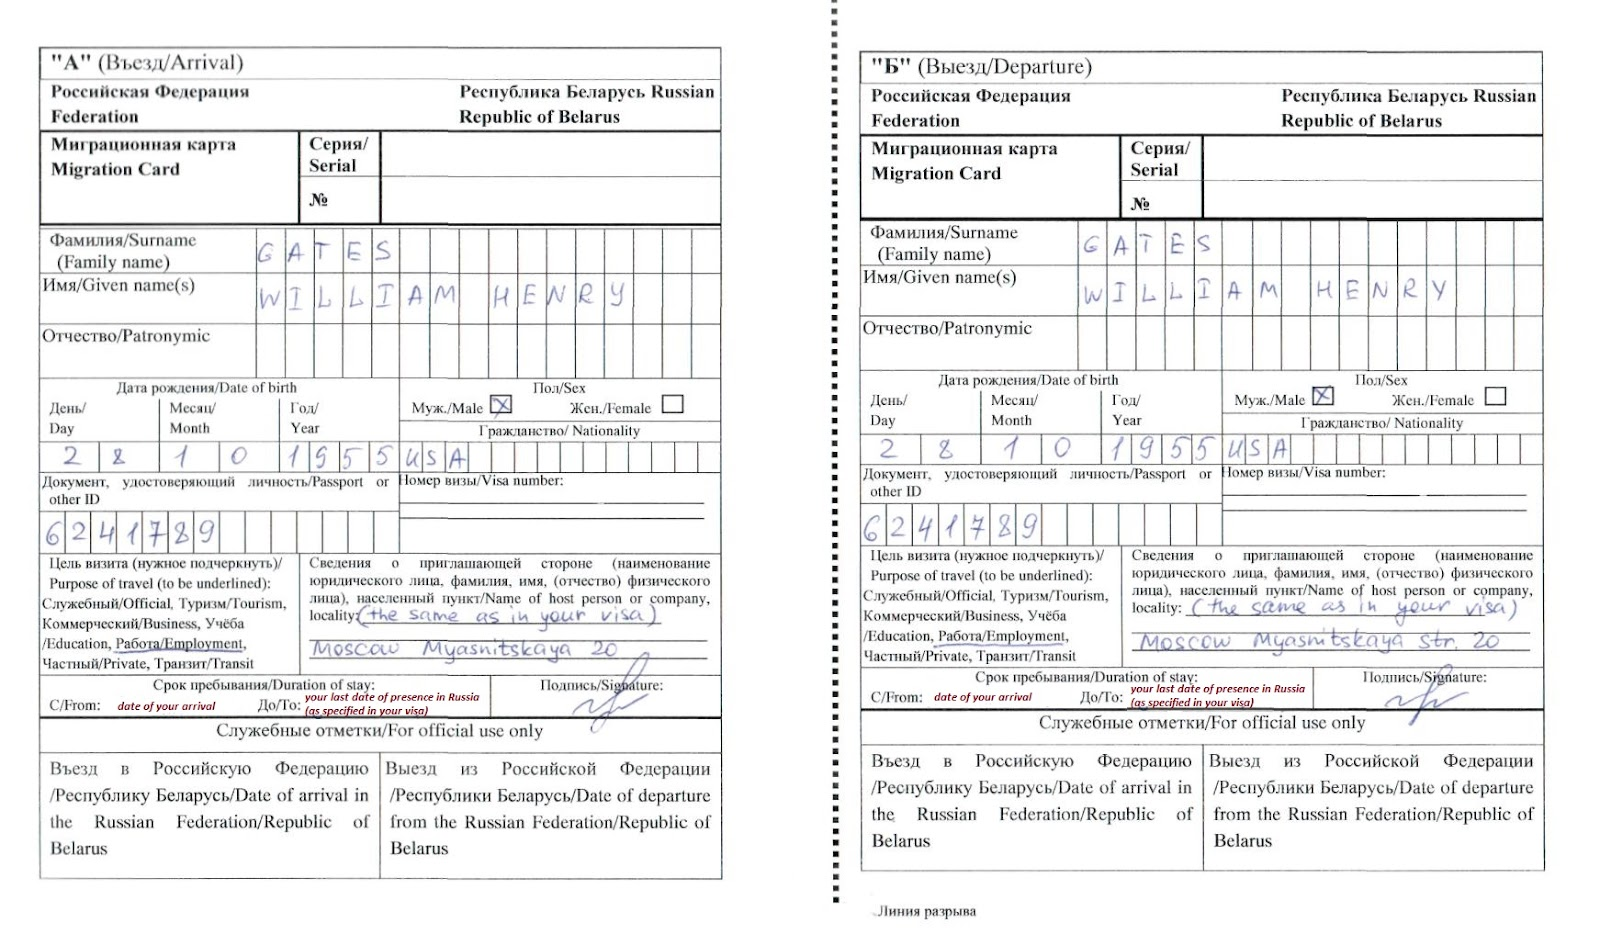 Migration Card issued on Russian border